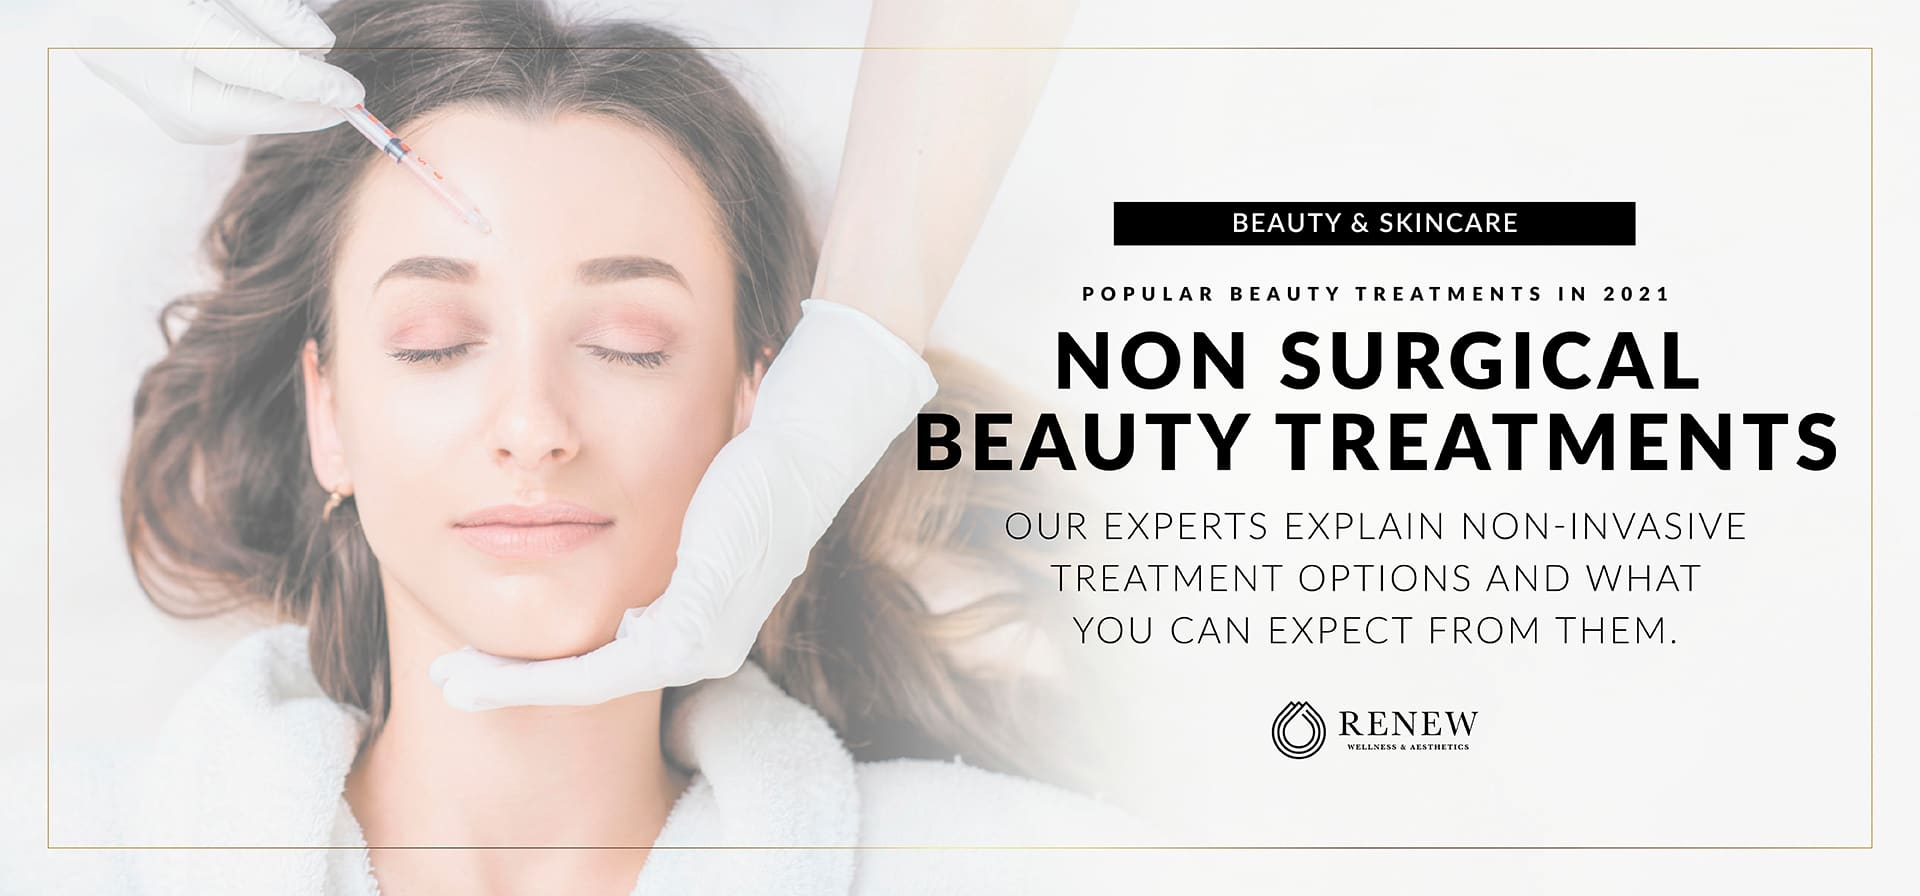 Non Surgical Face Lift and Beauty Treatments Popular in 2021